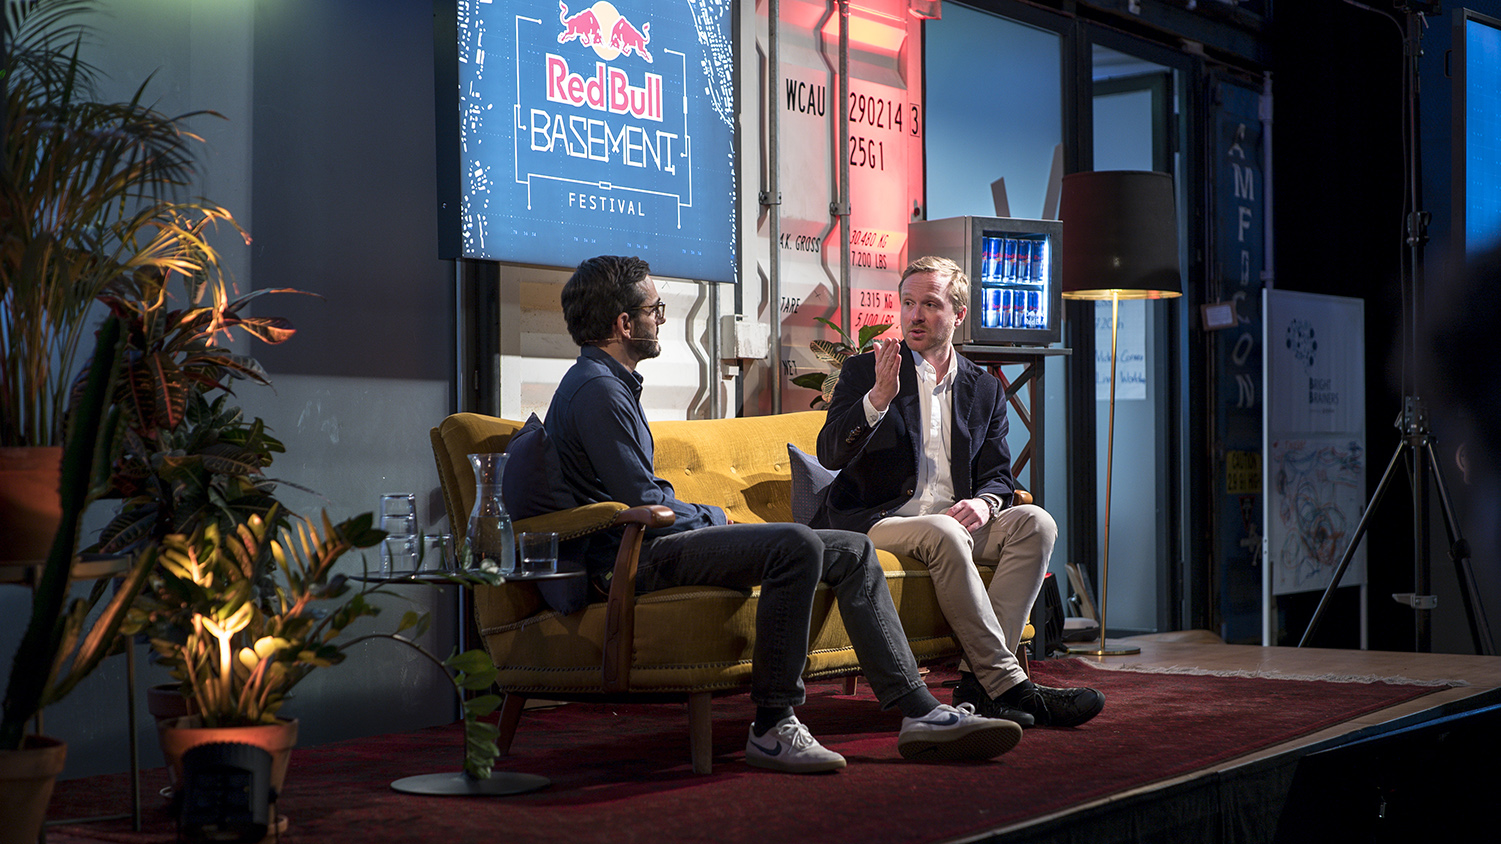 Discussion is seen during the Red Bull Basement Festival in Zurich, Switzerland on December 15, 2018